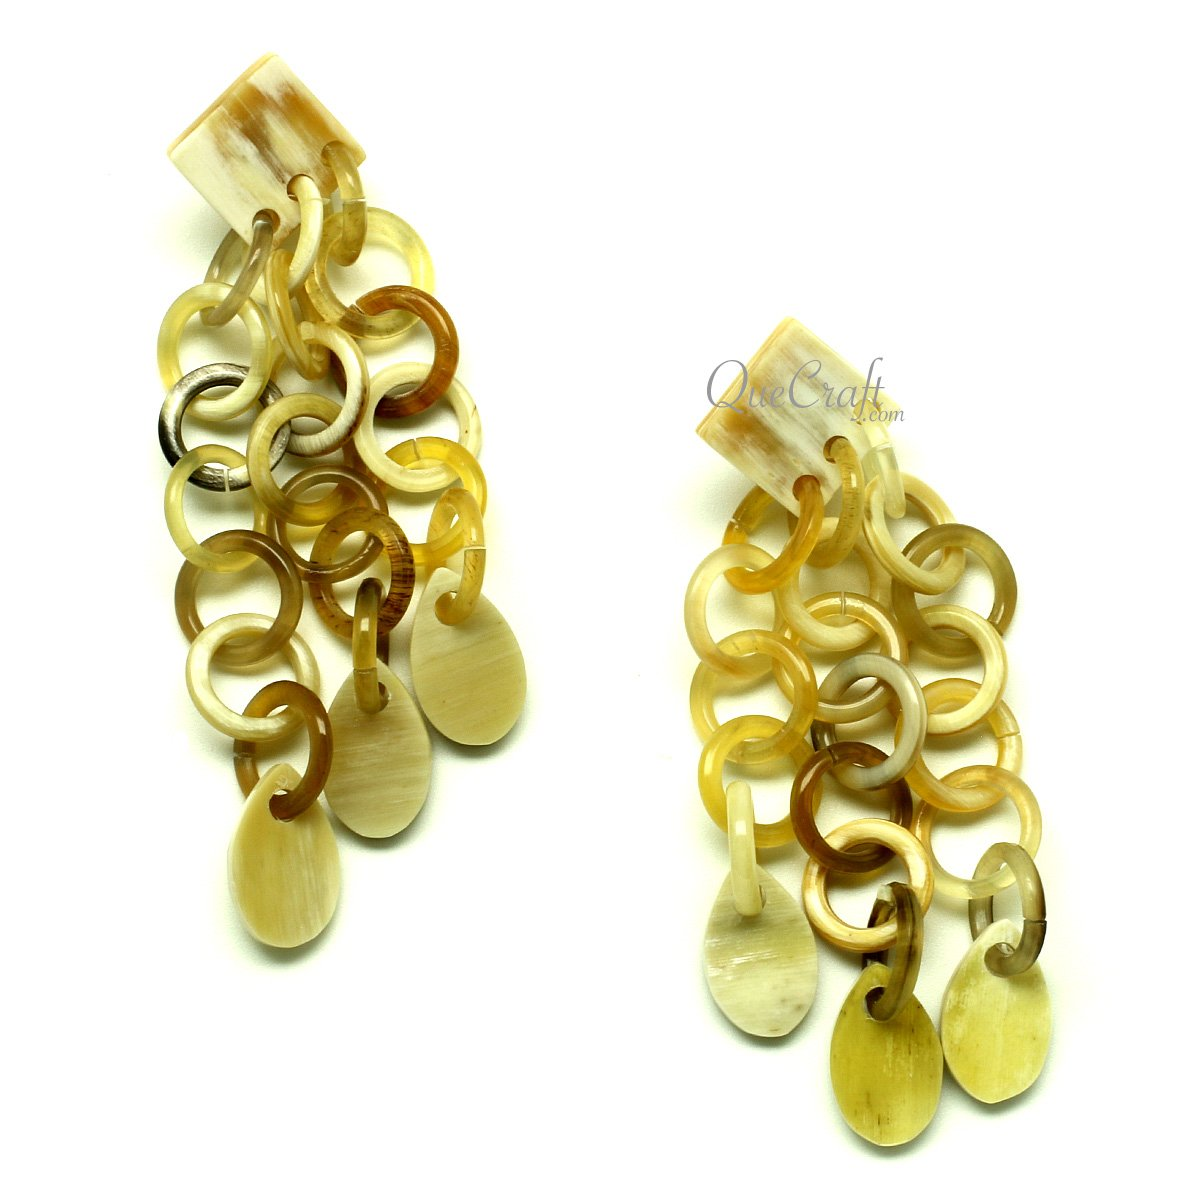 Horn Earrings #13025 - HORN.JEWELRY